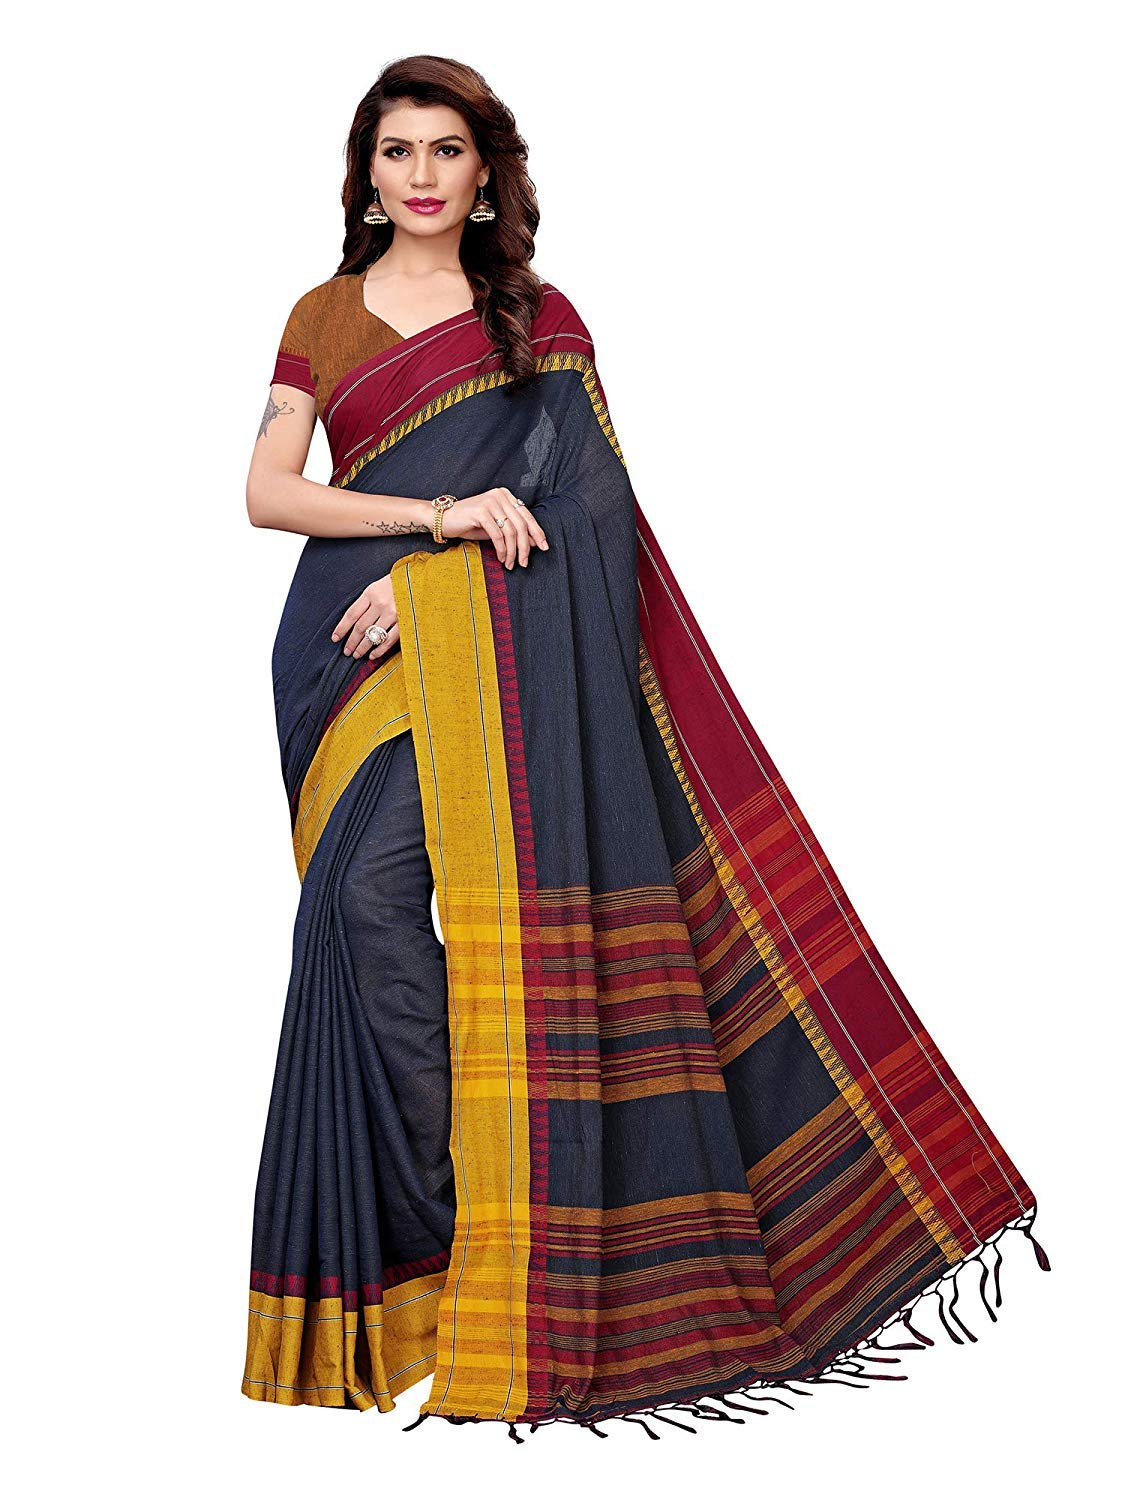 Indian Handloom Saree Designer Bollywood Linen Party Wear Sari with Unstitched Blousepiece (Navy Blue)